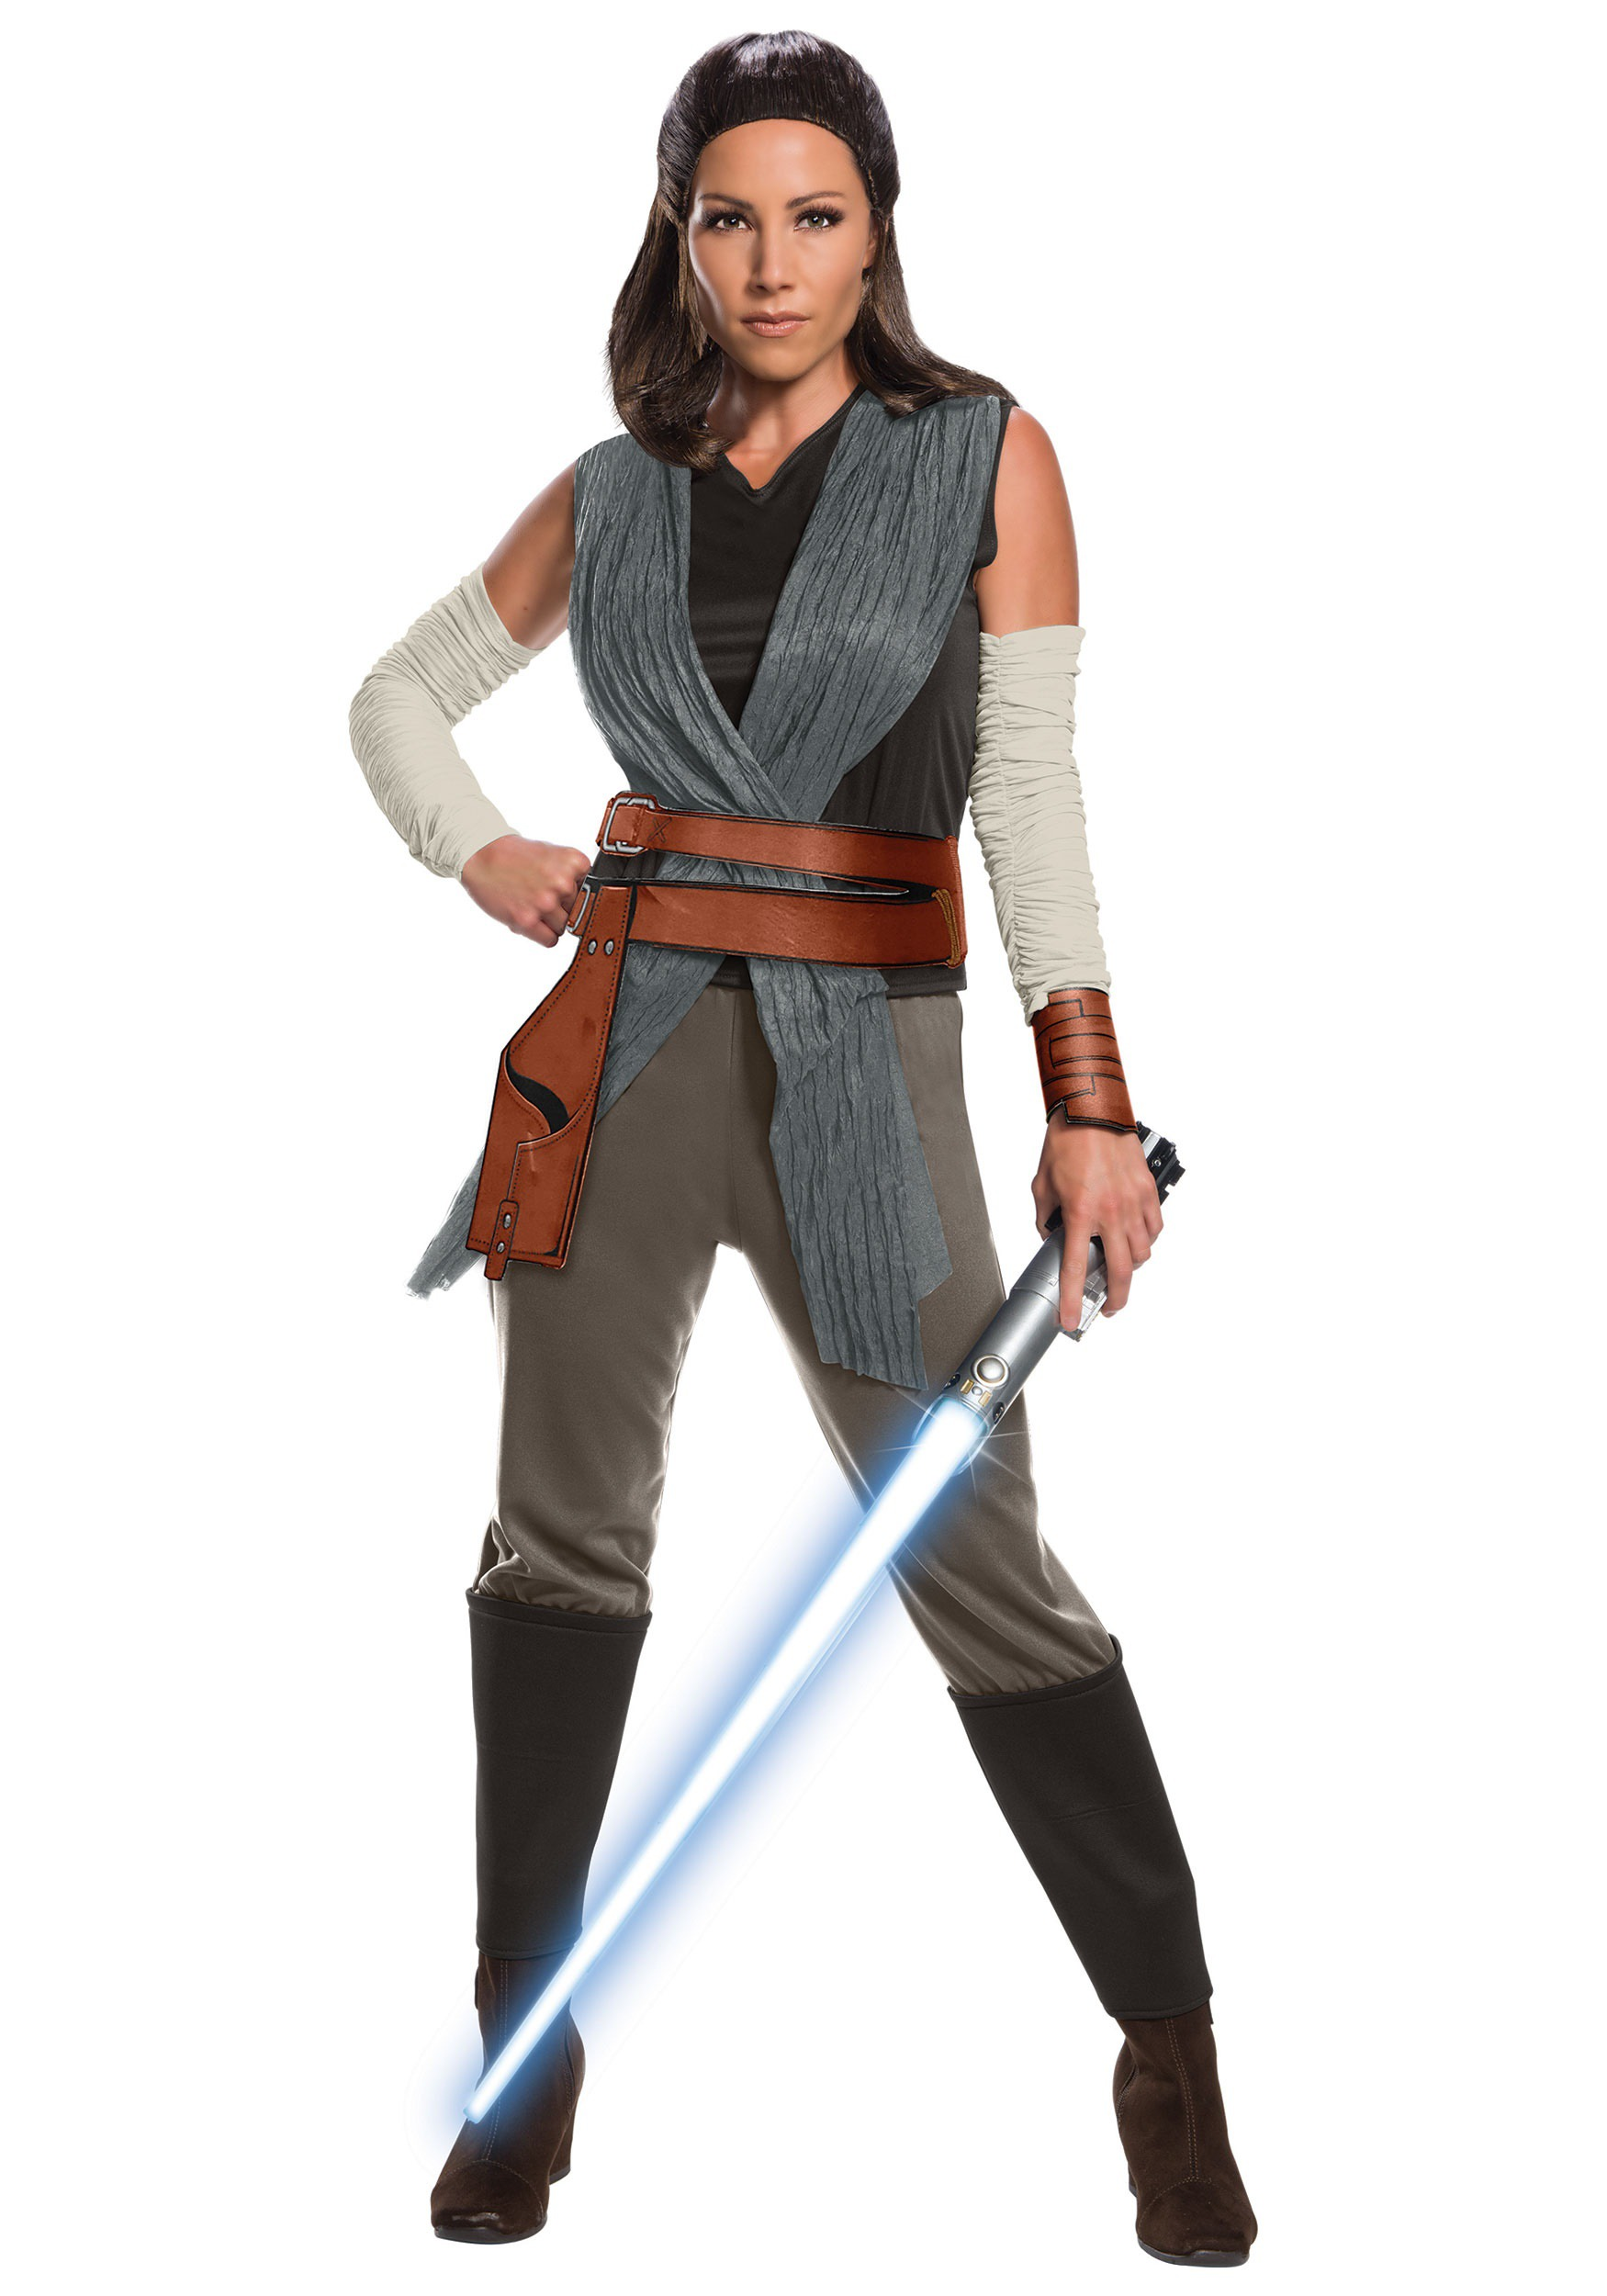 Star Wars The Last Jedi Deluxe Rey Adult Costume  sc 1 st  Halloween Costumes UK & Adult Star Wars Costumes - Halloween Costume